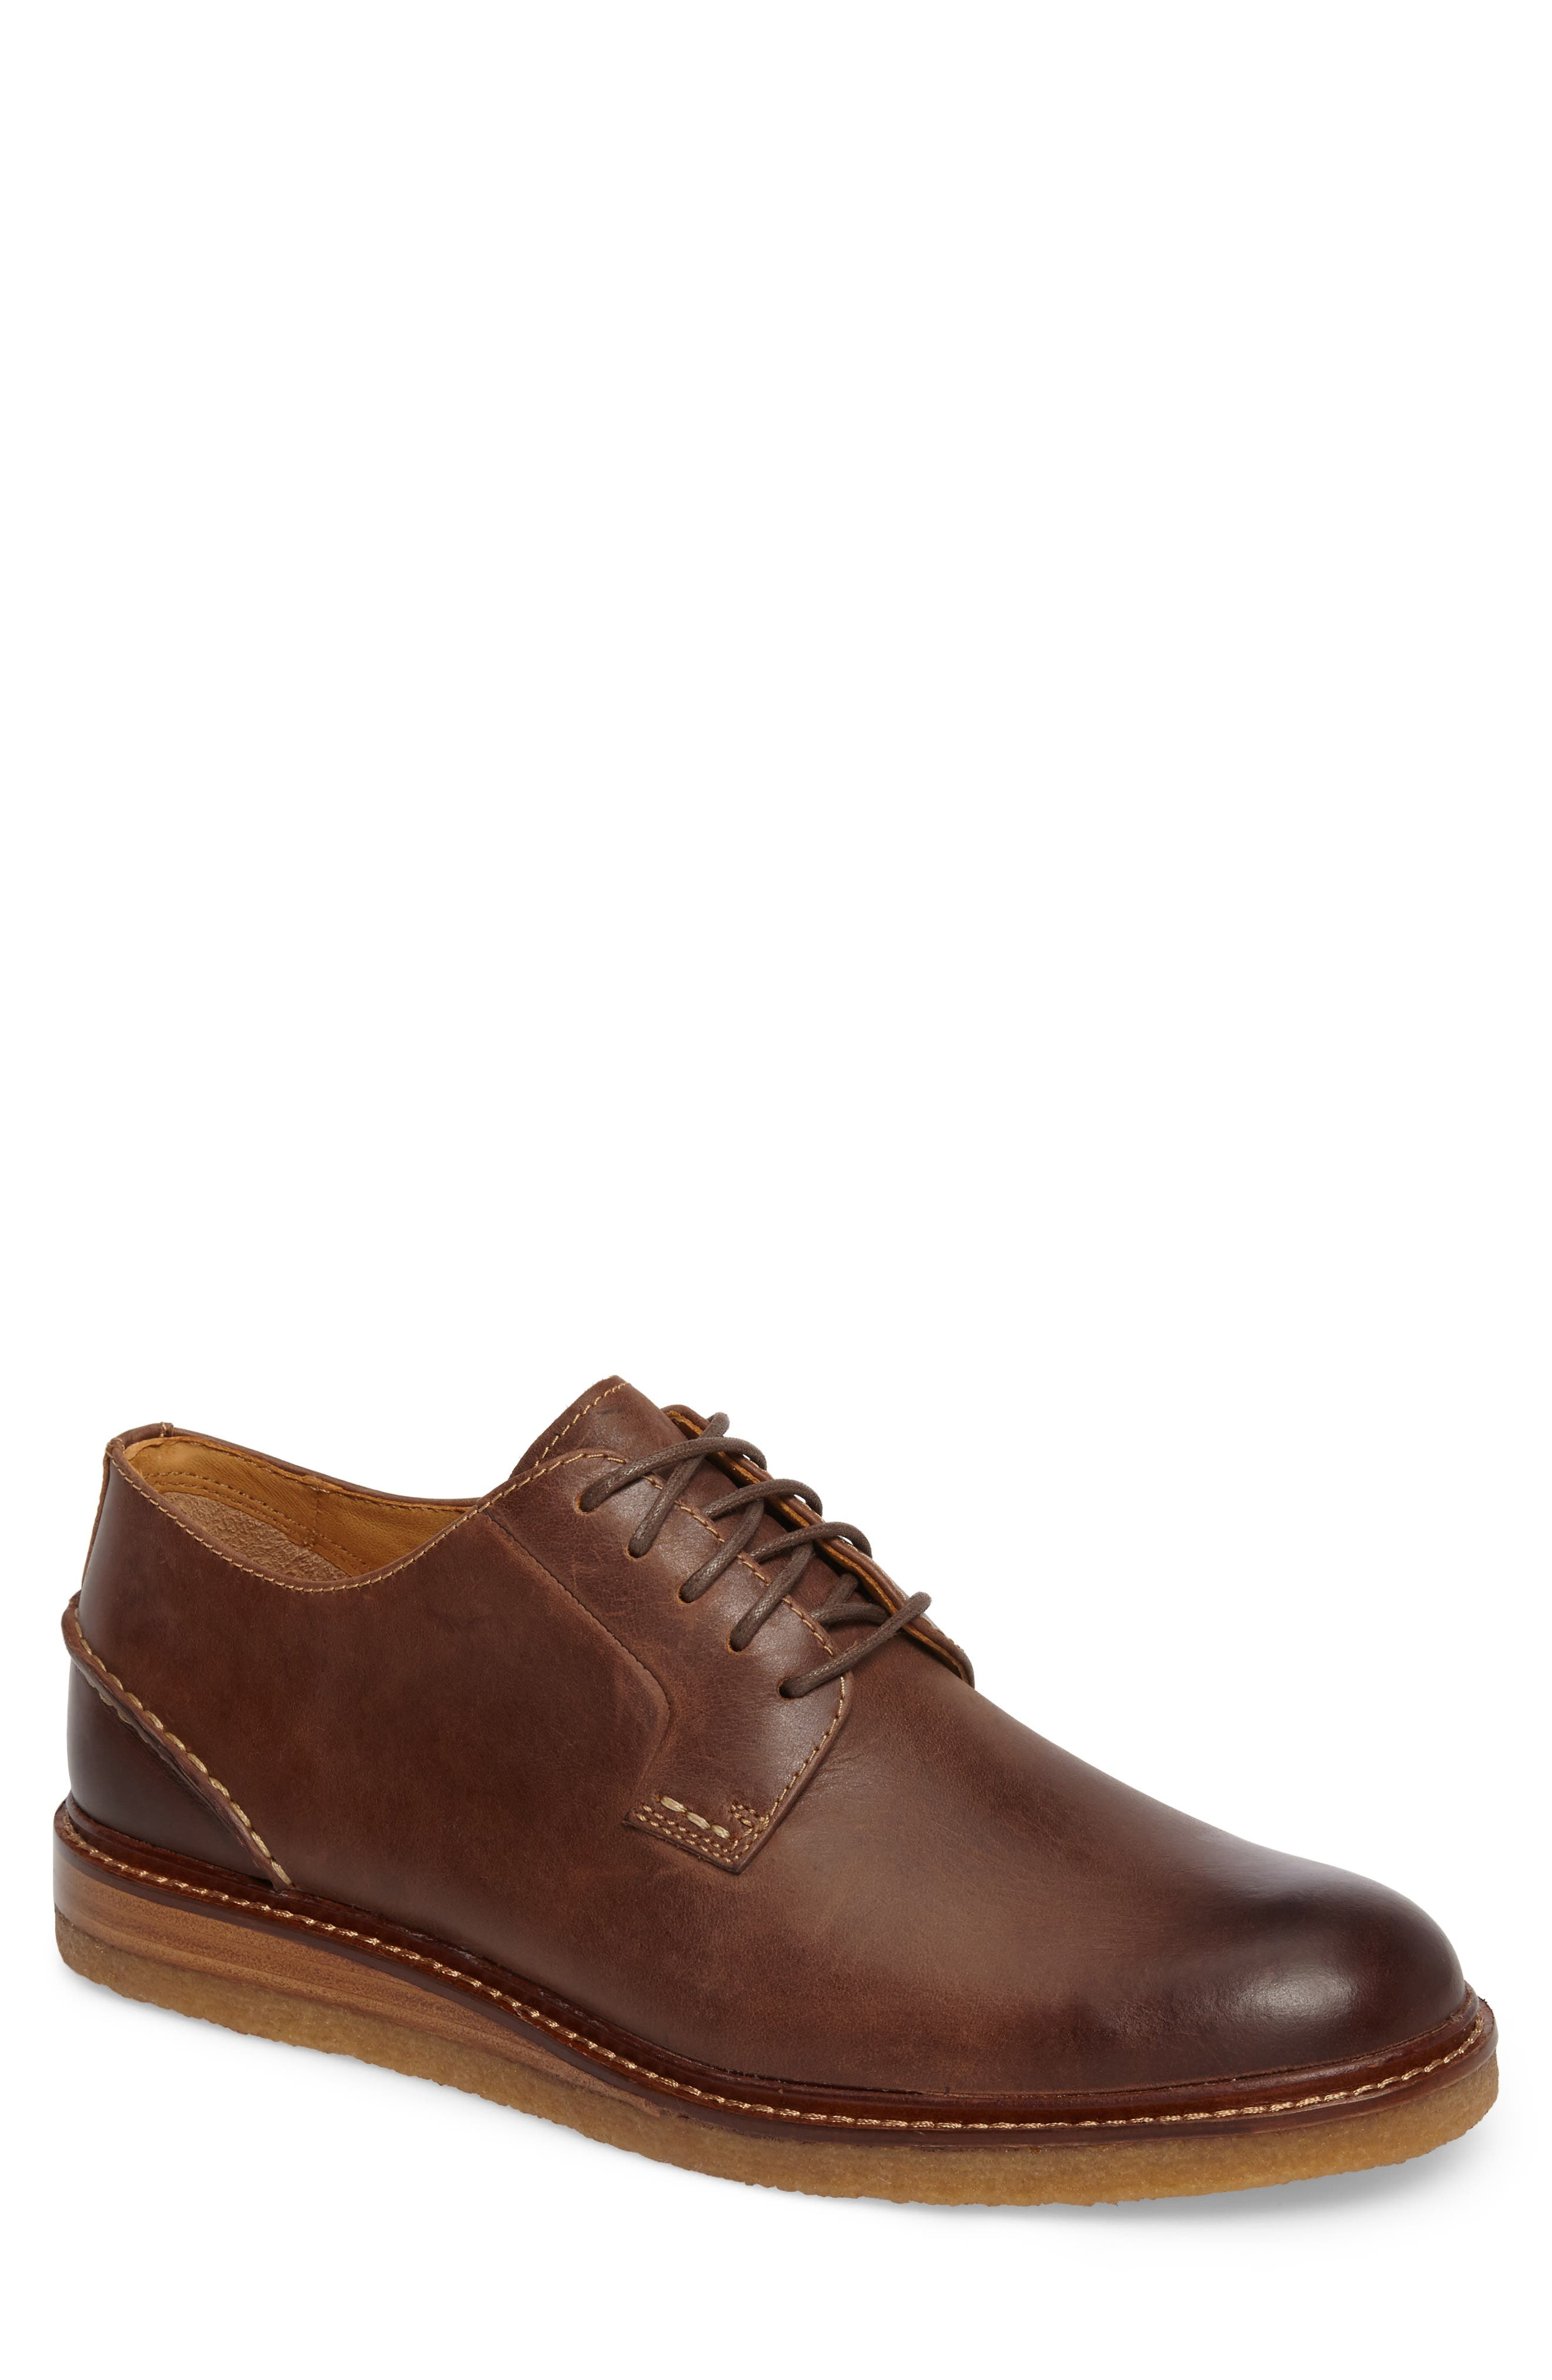 Gold Cup Plain Toe Derby,                         Main,                         color, Brown Leather